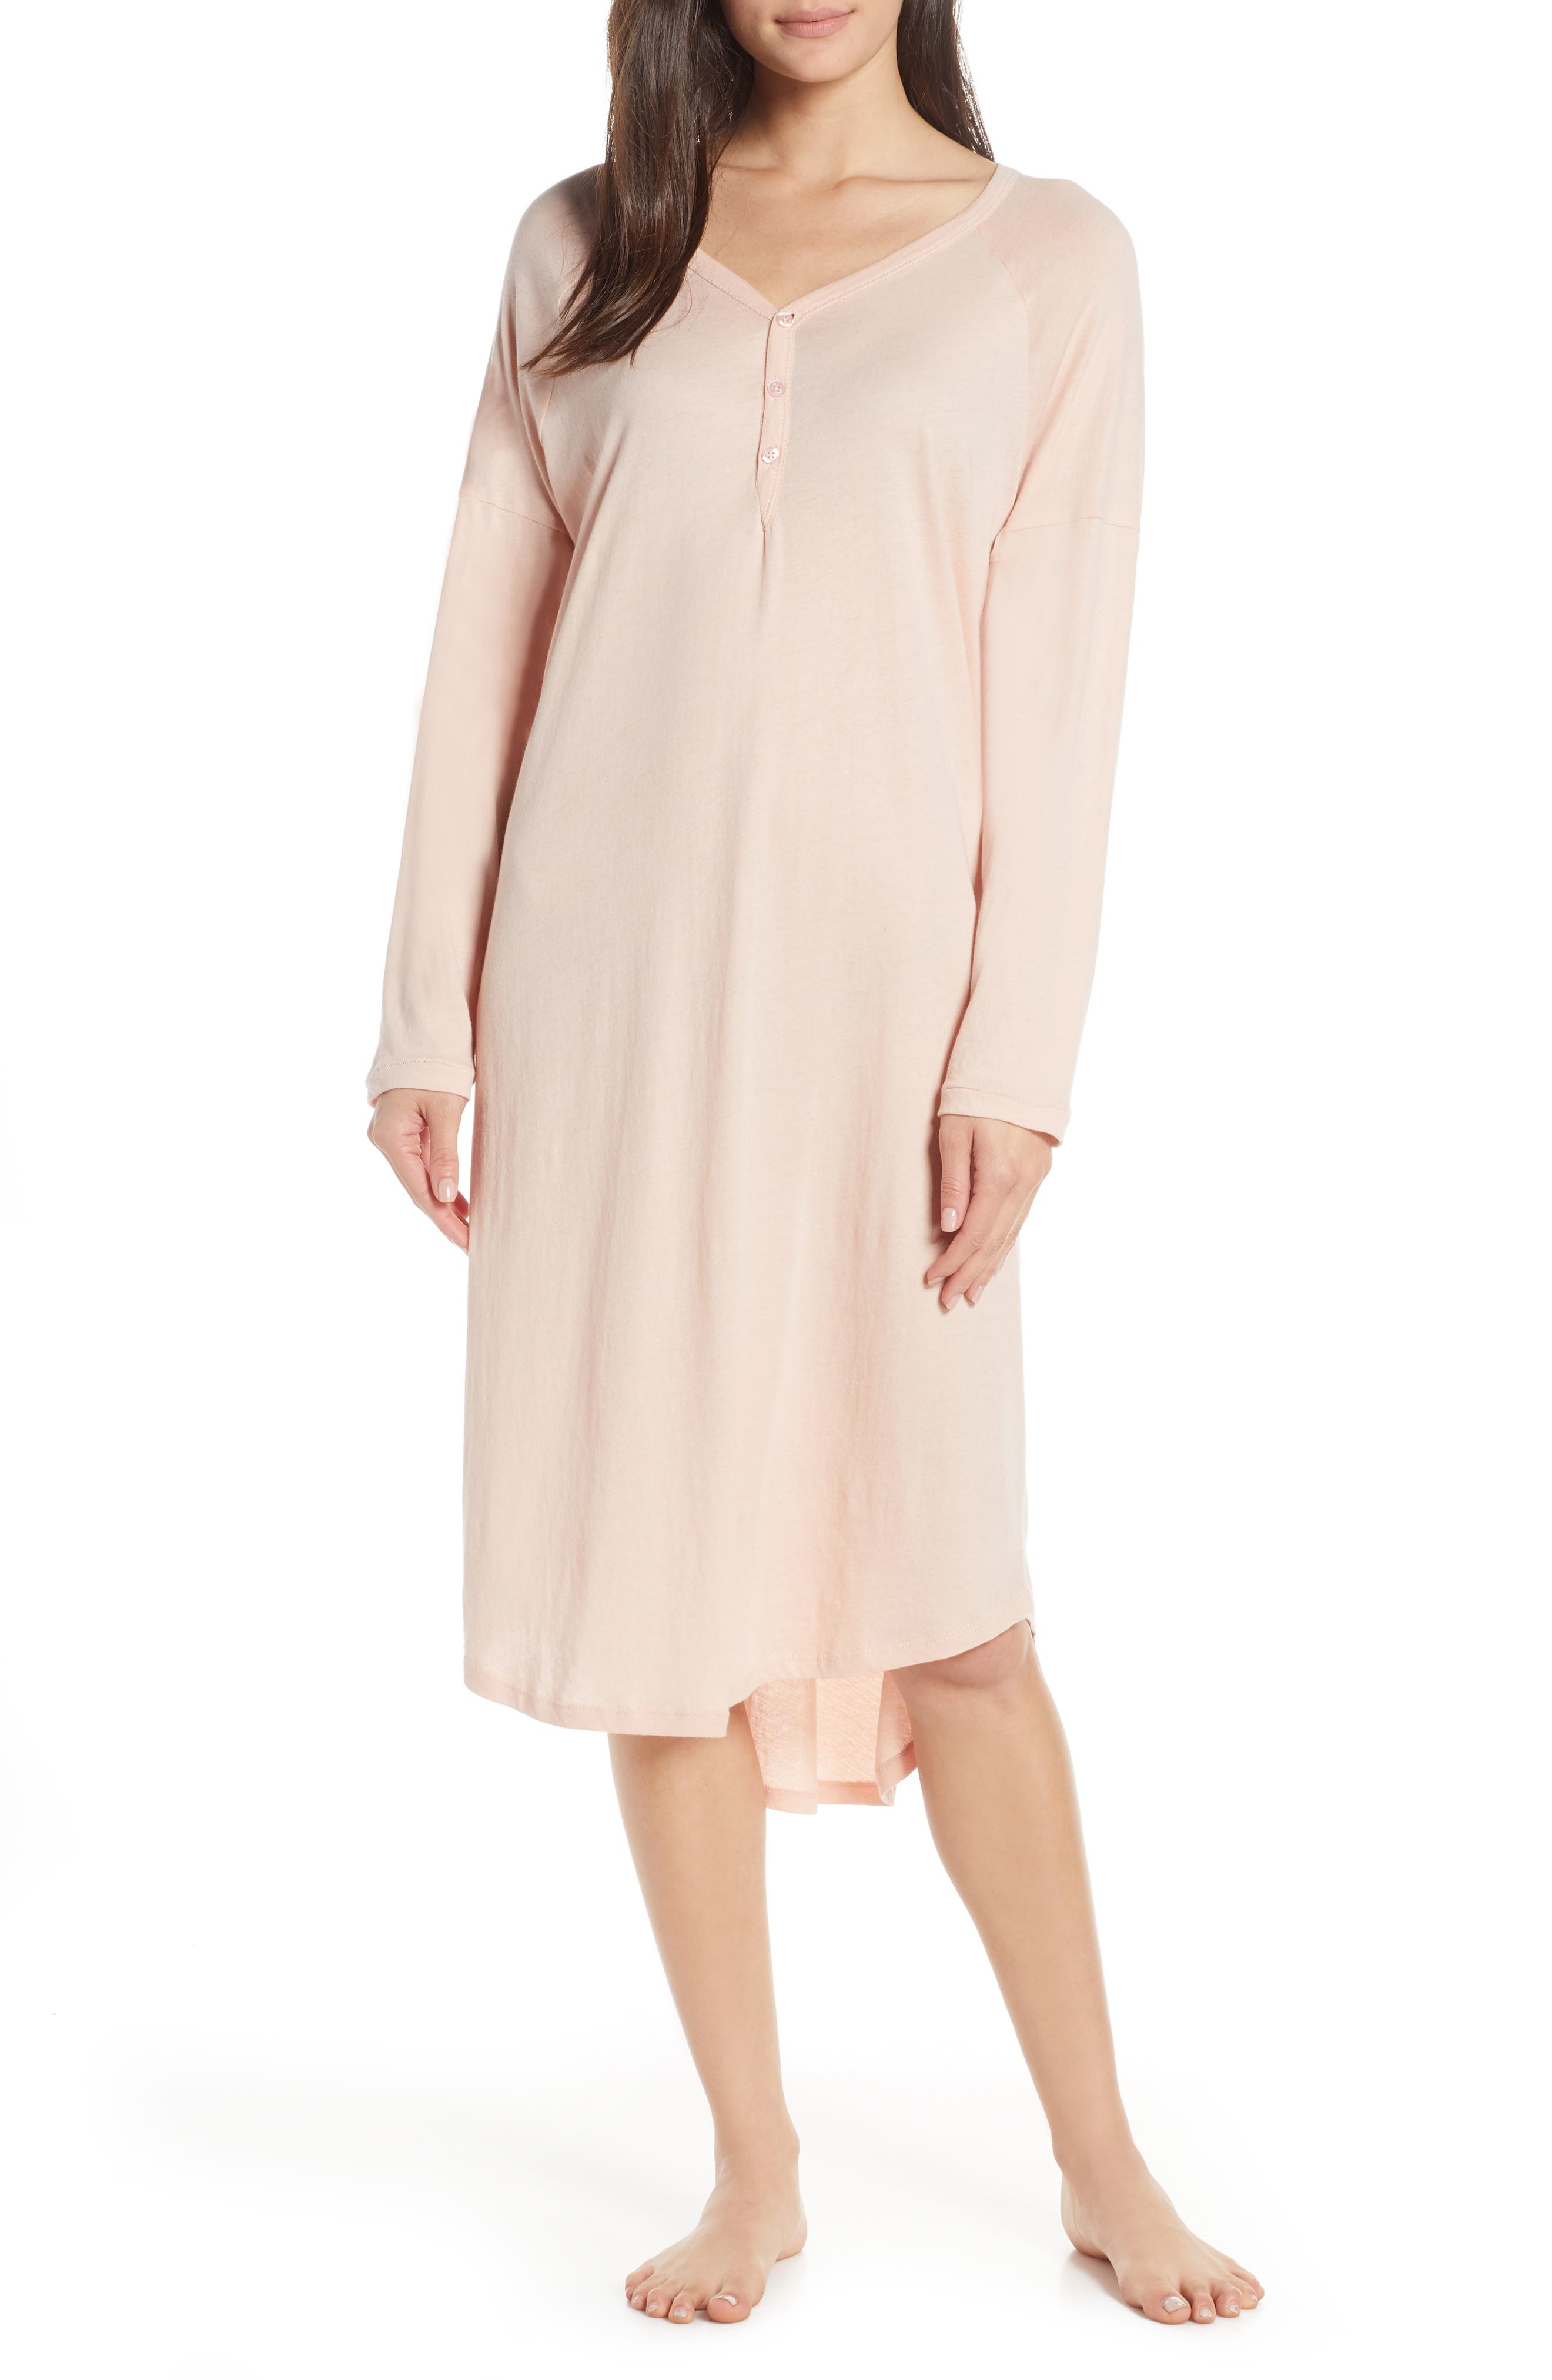 The Great. The Nightshirt Long Nightgown, Pink